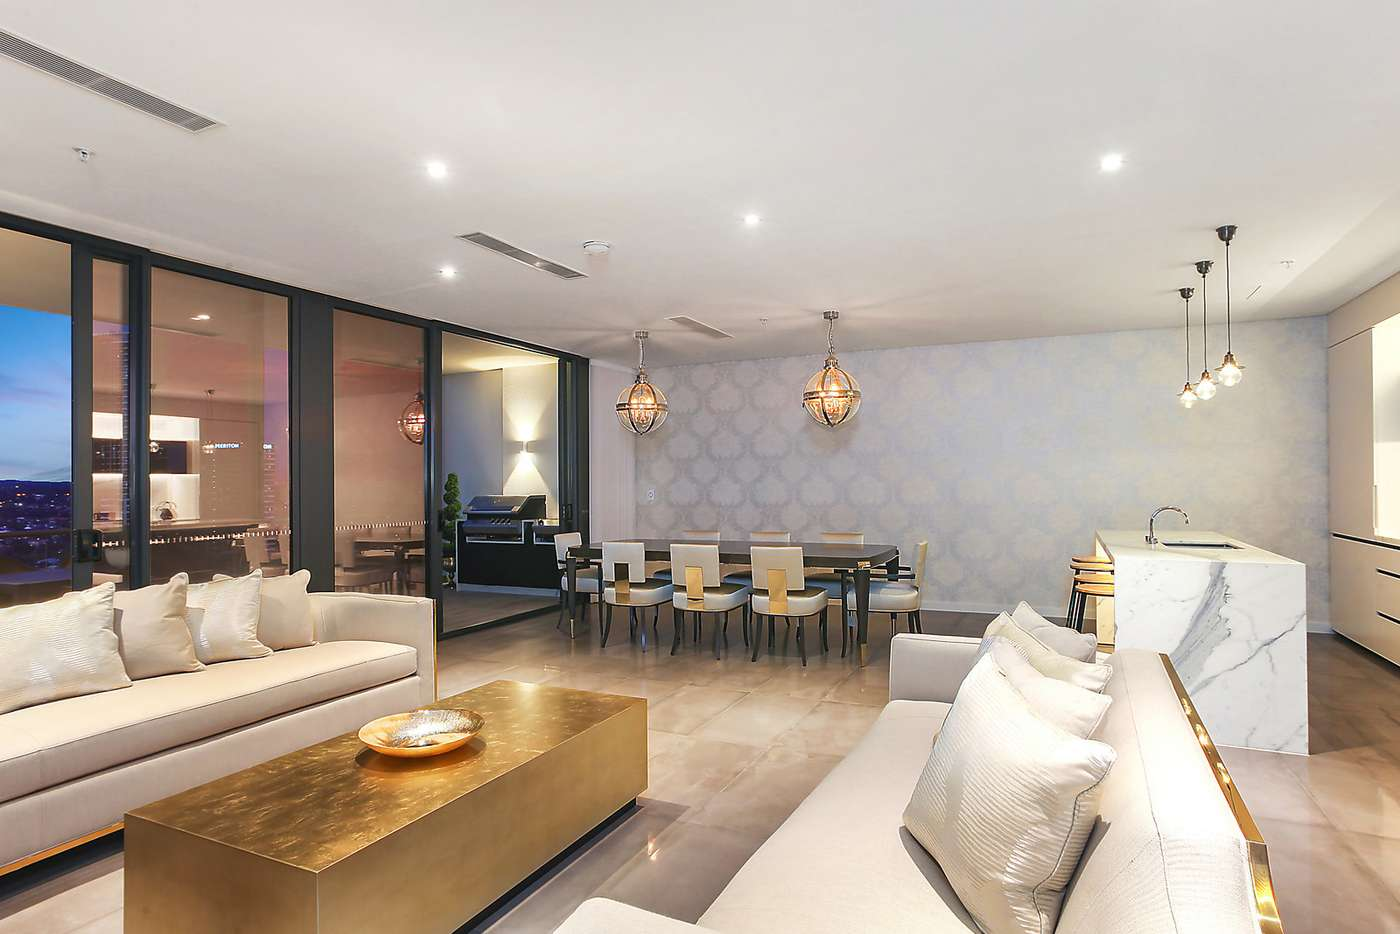 Main view of Homely apartment listing, 2805/45 Macquarie Street, Parramatta NSW 2150